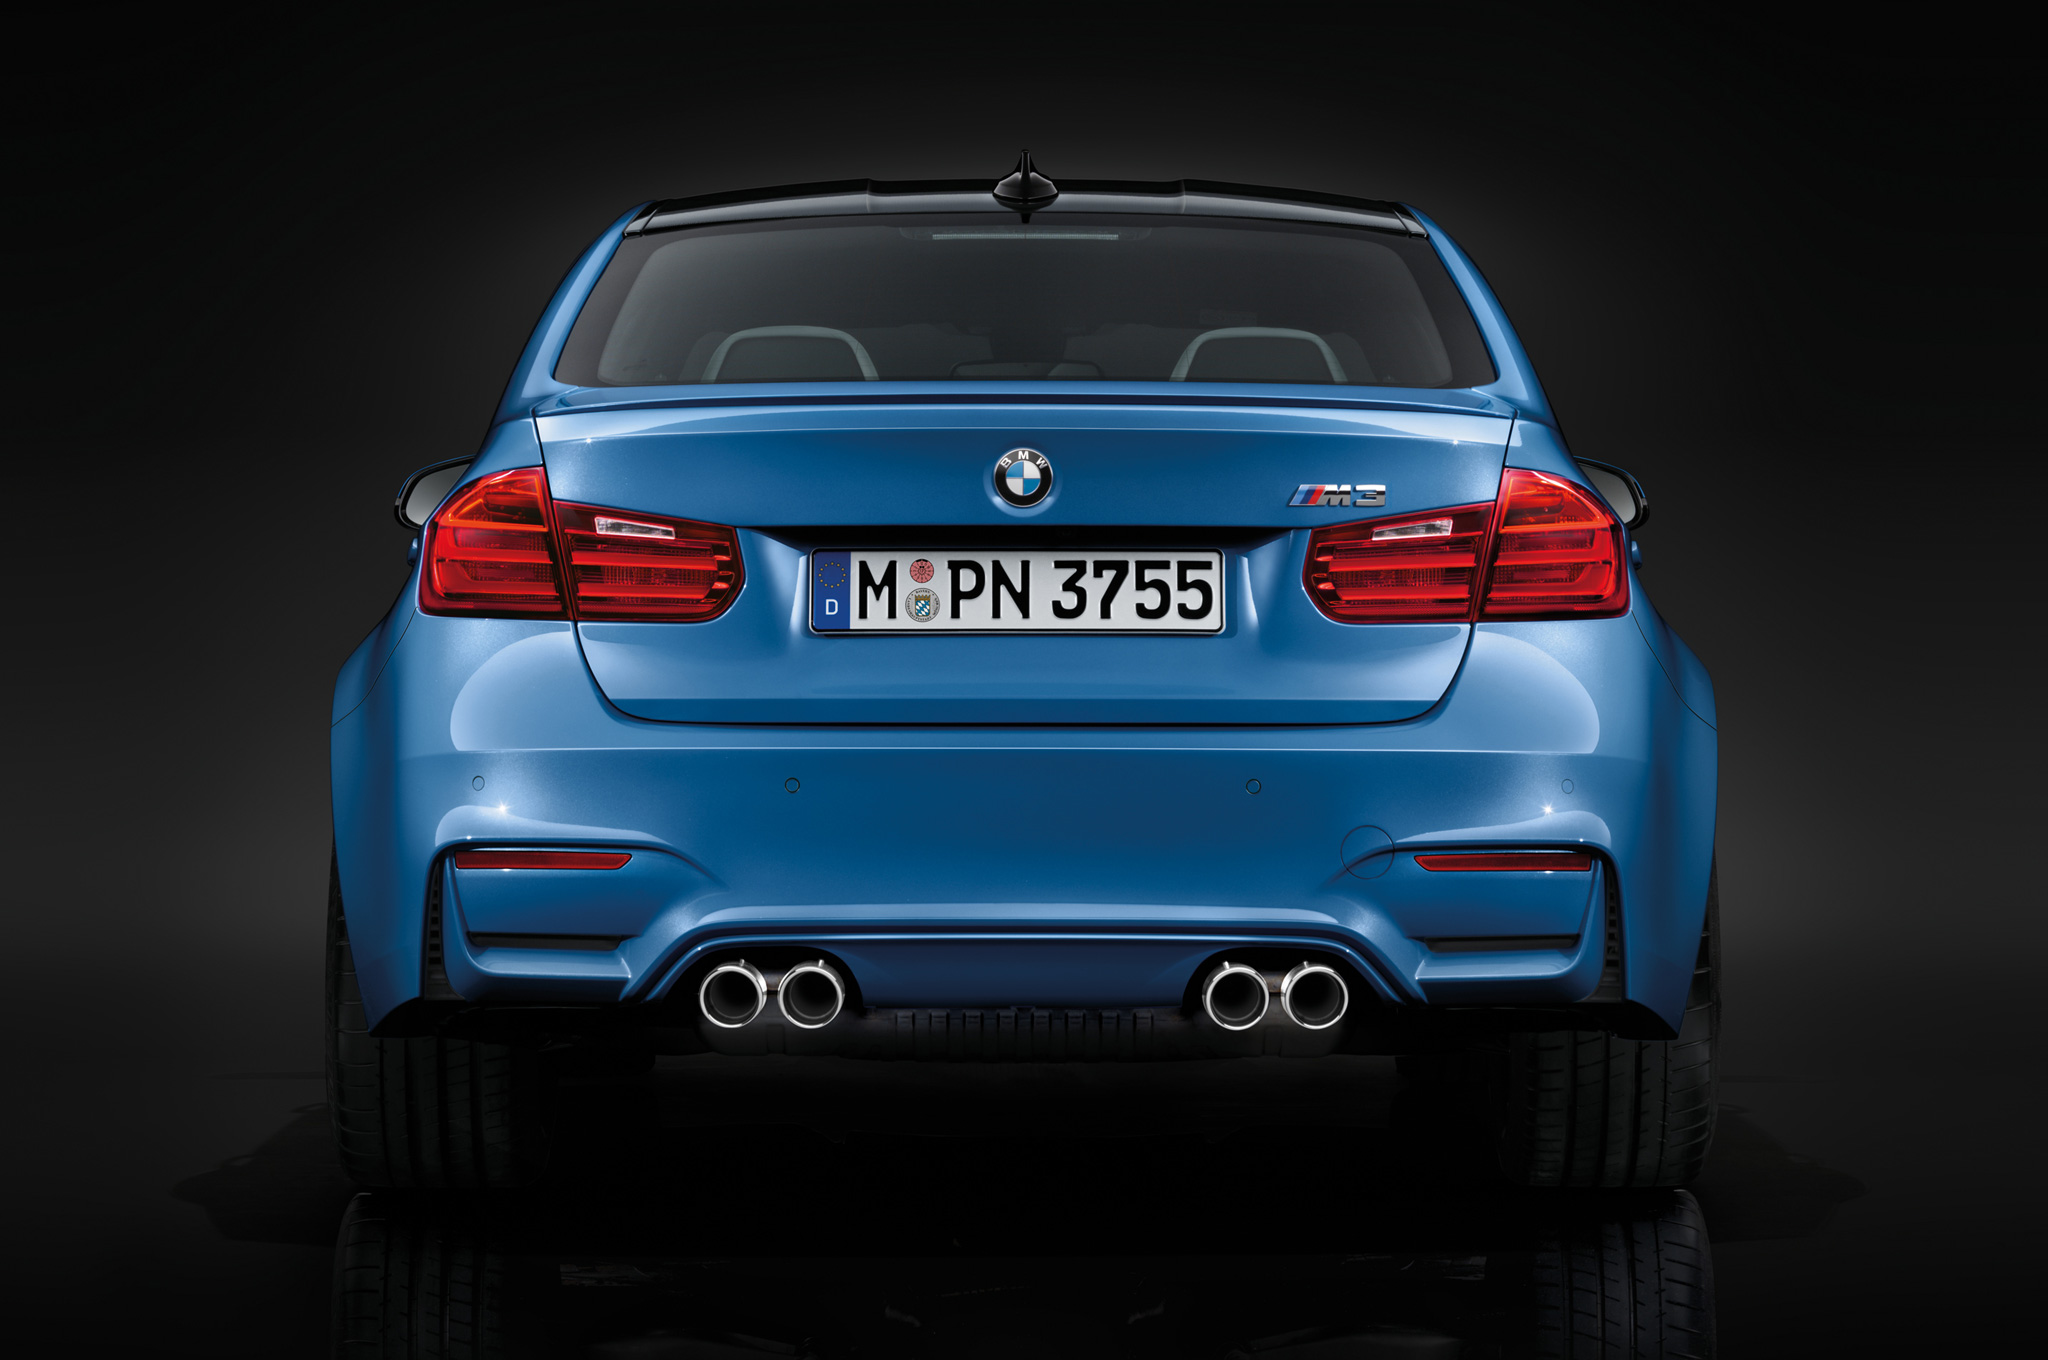 2015 Bmw M3 Rear Lamp (Photo 50 of 55)